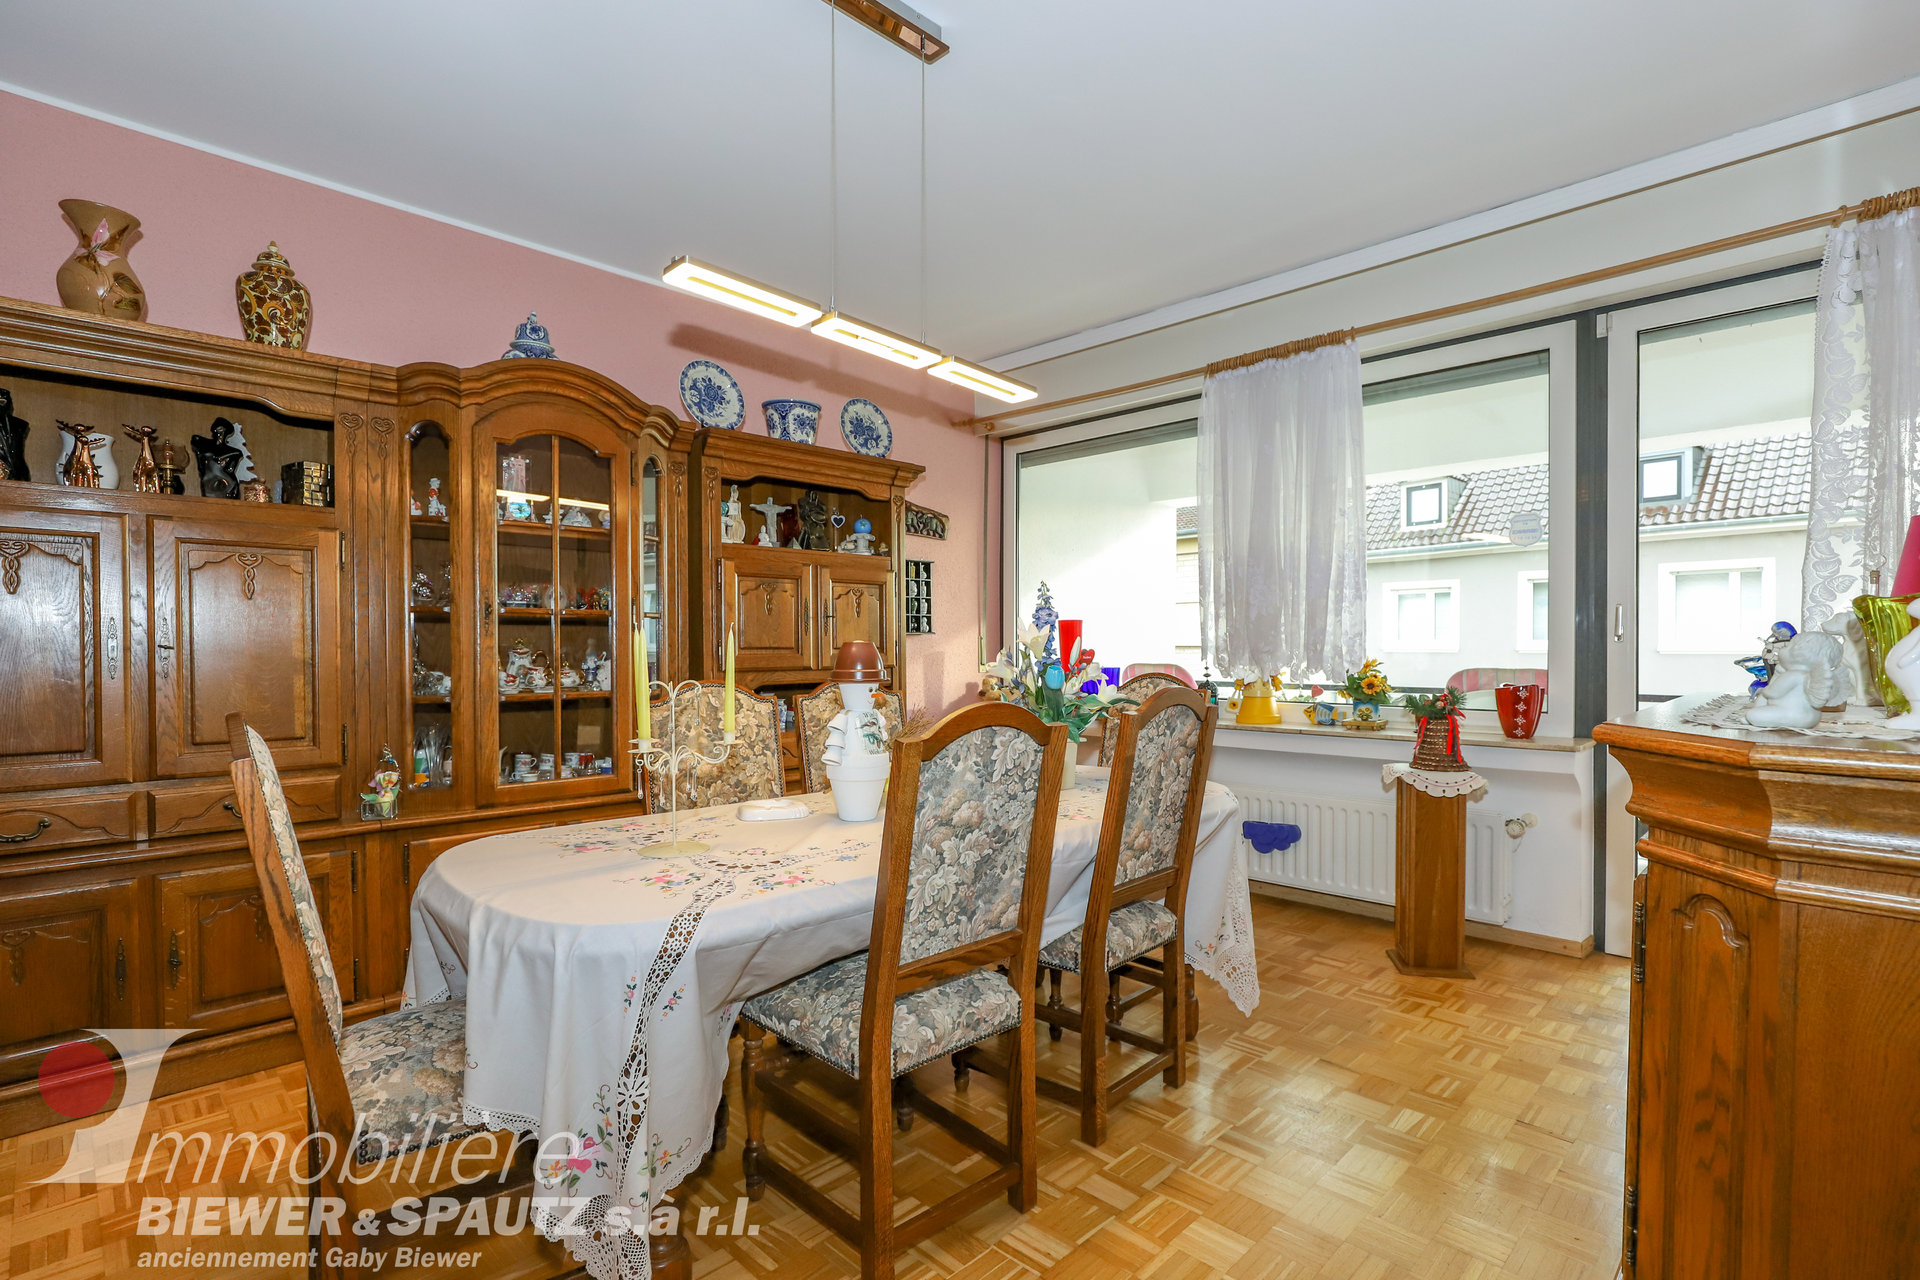 FOR SALE - duplex with 3 bedrooms in Mullendorf/Steinsel